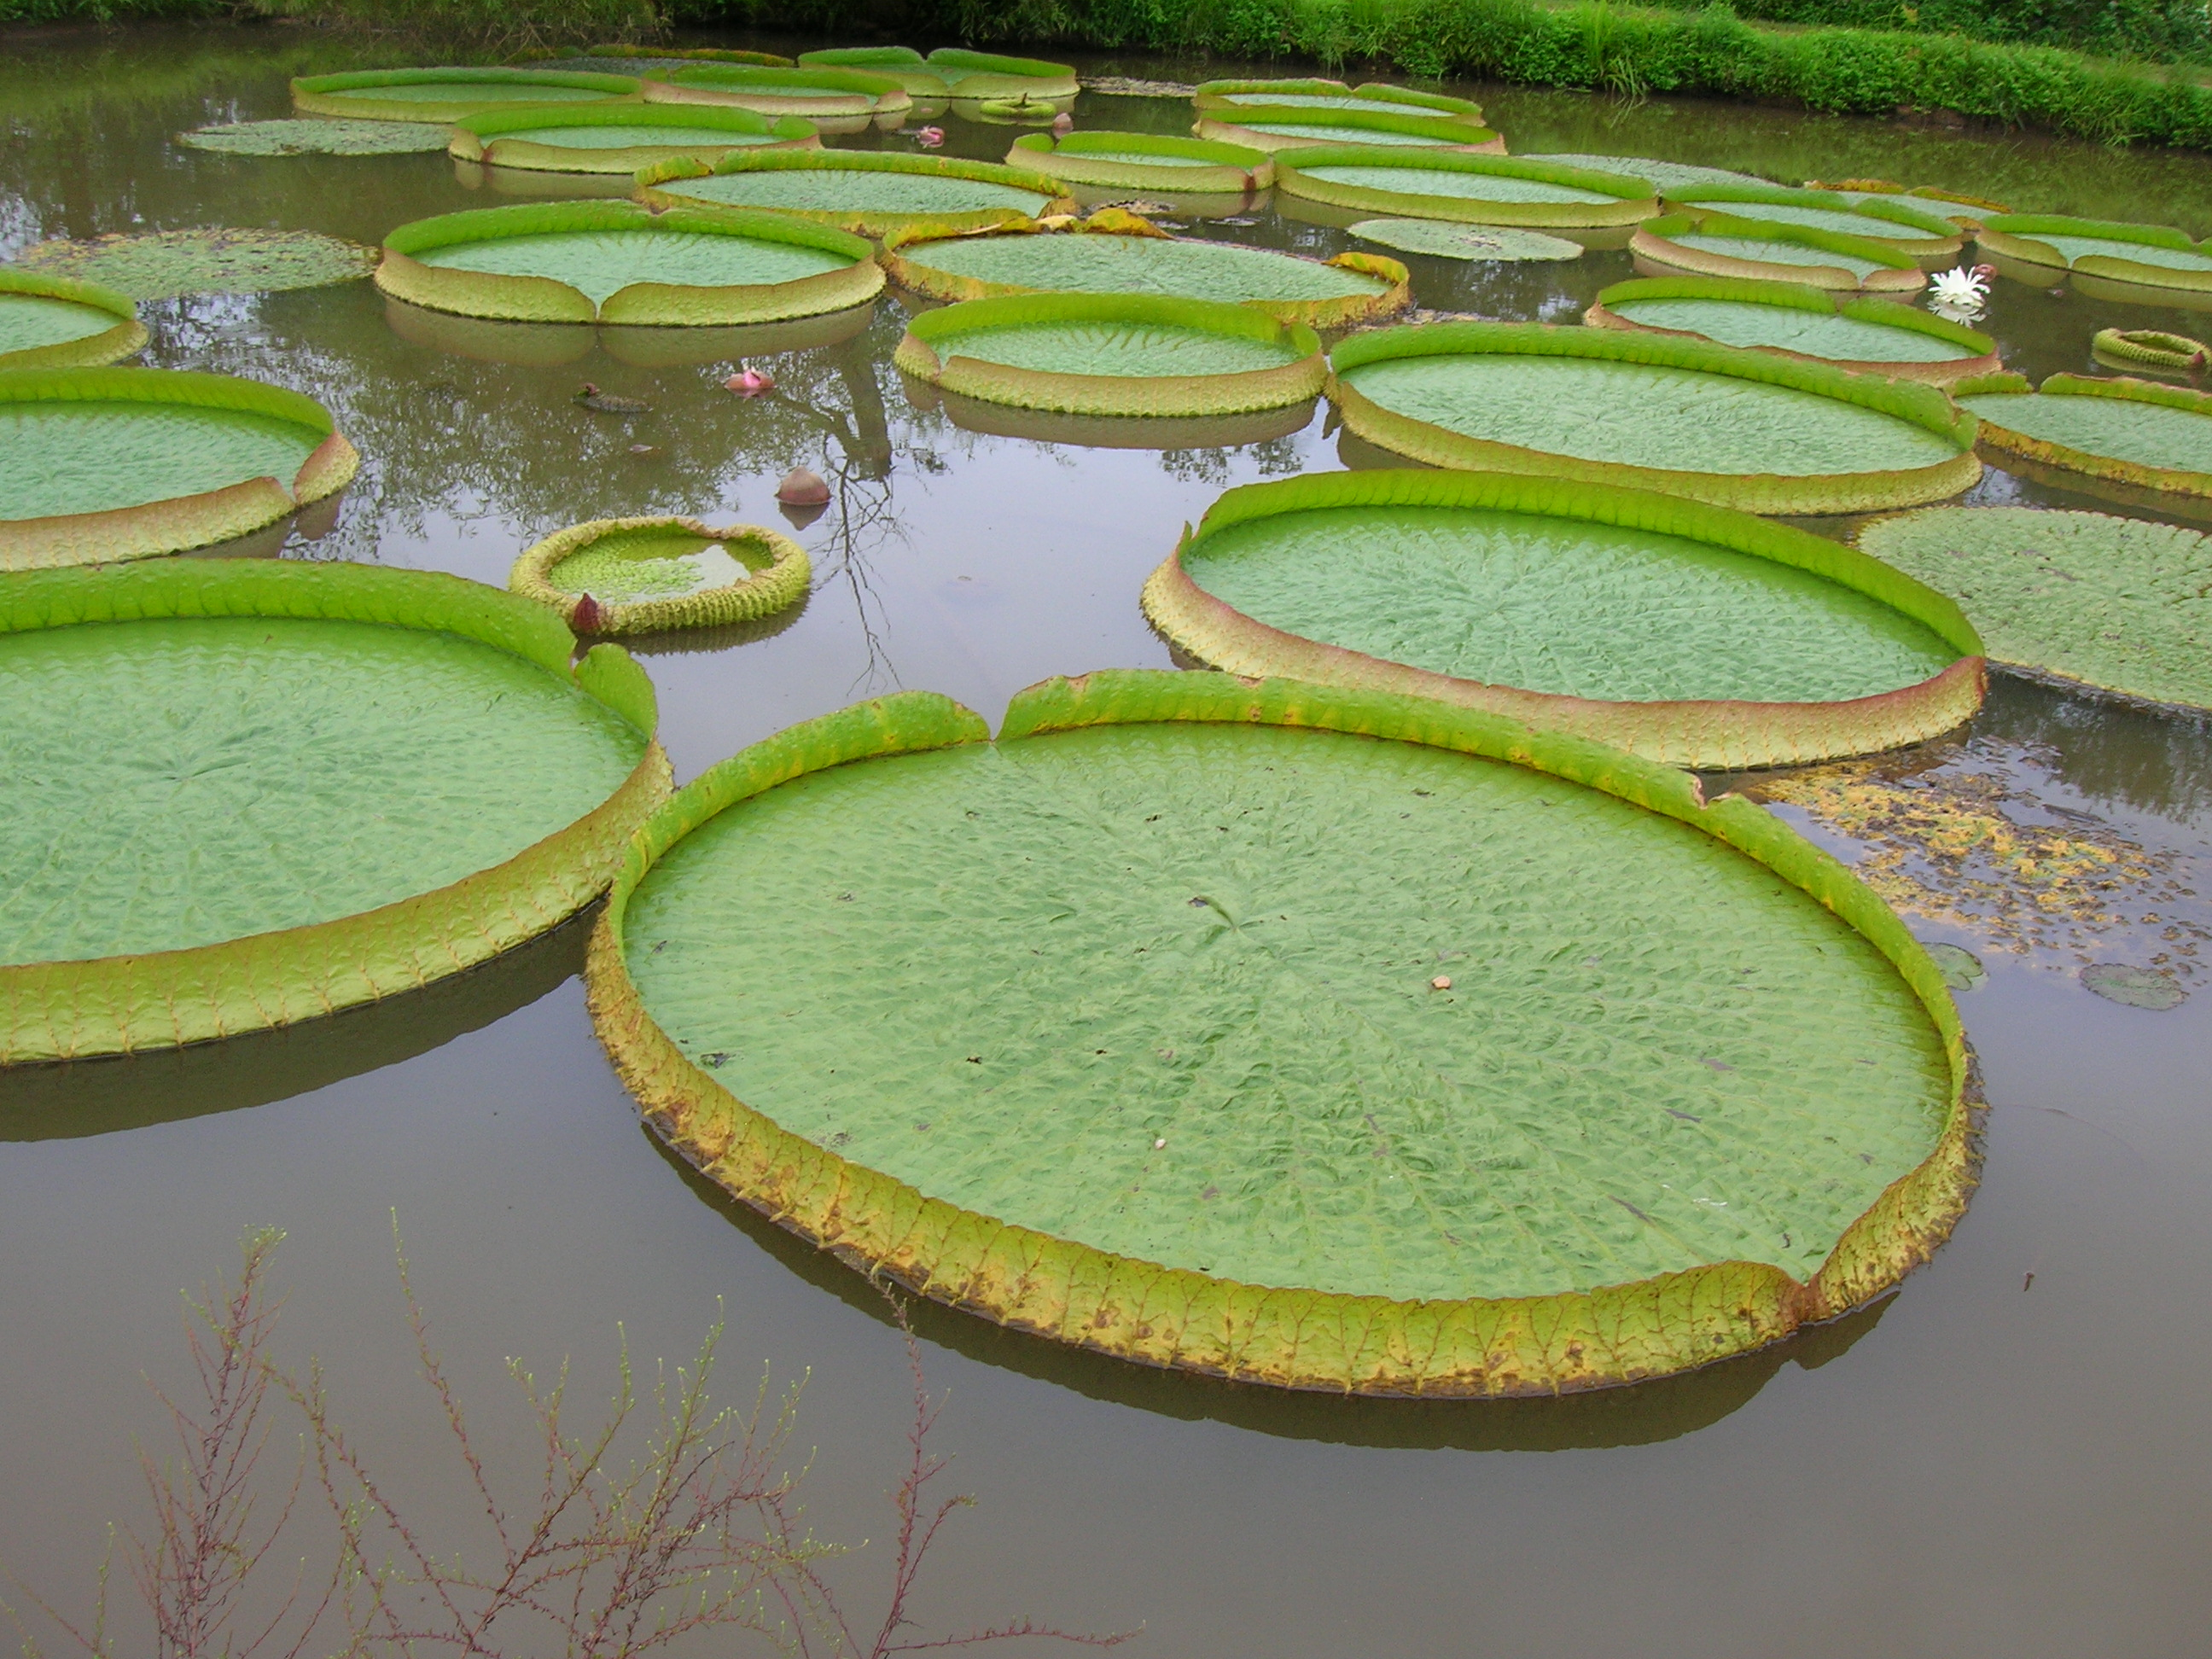 File:Giant lily pads (...